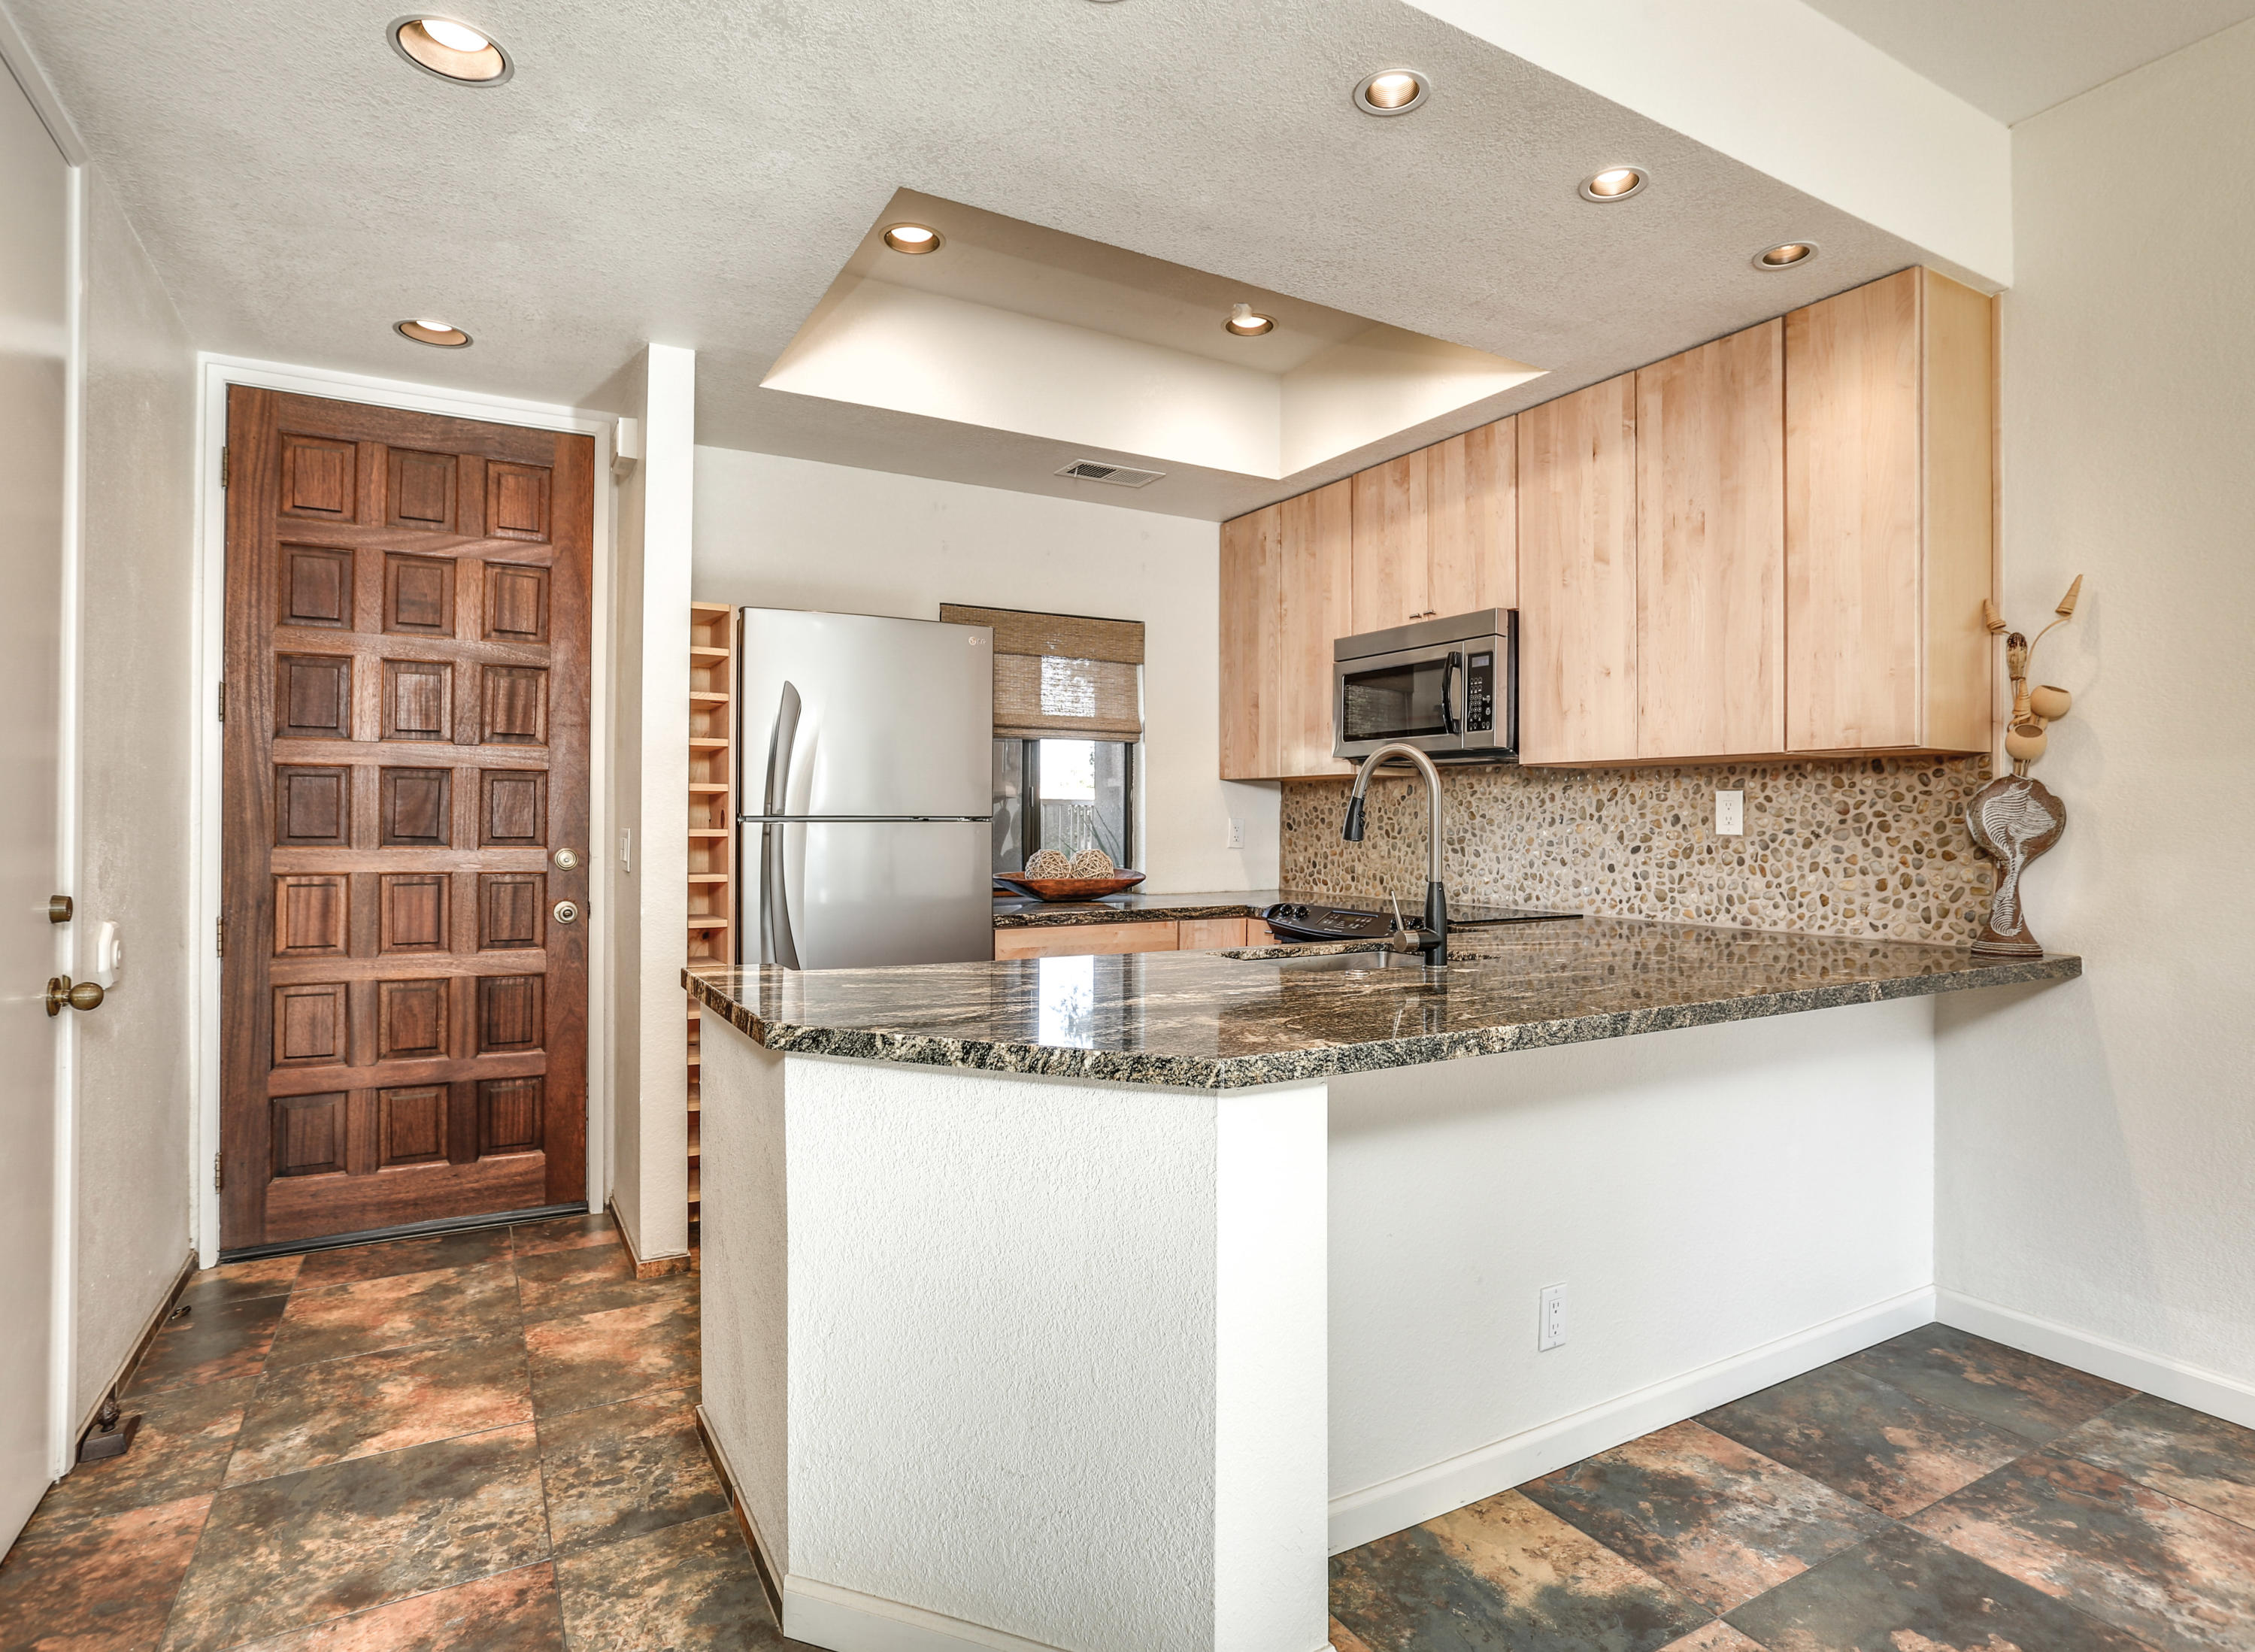 Back On Market!!!  Beautifully renovated and updated Home! This home is being Sold Furnished.. New flooring throughout., Window covering's are Shutters.. The kitchen has been redone, open airy feeling.. Super Cozy light & bright! Both Baths have been updated & remodeled beautiful vanities, showers. This condo offers 10' ceilings providing a lovely open feel! The covered patio is the perfect place for outdoor entertaining and relaxing with an extended back & side area.. Stunning Gated Front area for your Furry friends! Golf Course Views from you patio area.. Peaceful and Stunning! Excellent rental condo! Land Lease good till 2069. Come visit Desert Princess CC Its the Best! we offer a 27-hole PGA Championship golf course! Our HOAs includes Social Membership to the club with 20% off food, Cable with HBO & Showtime, Social, Tennis, Fitness Memberships, beautiful grounds & more! You're close to all the desert has to offer including easy access to Palm Springs, The PS Airport, The 10 Freeway and much, much more. Palm Springs is growing in many ways including the upcoming hockey stadium! Desert Princess offers easy access to it all! Call anytime for a private showing..